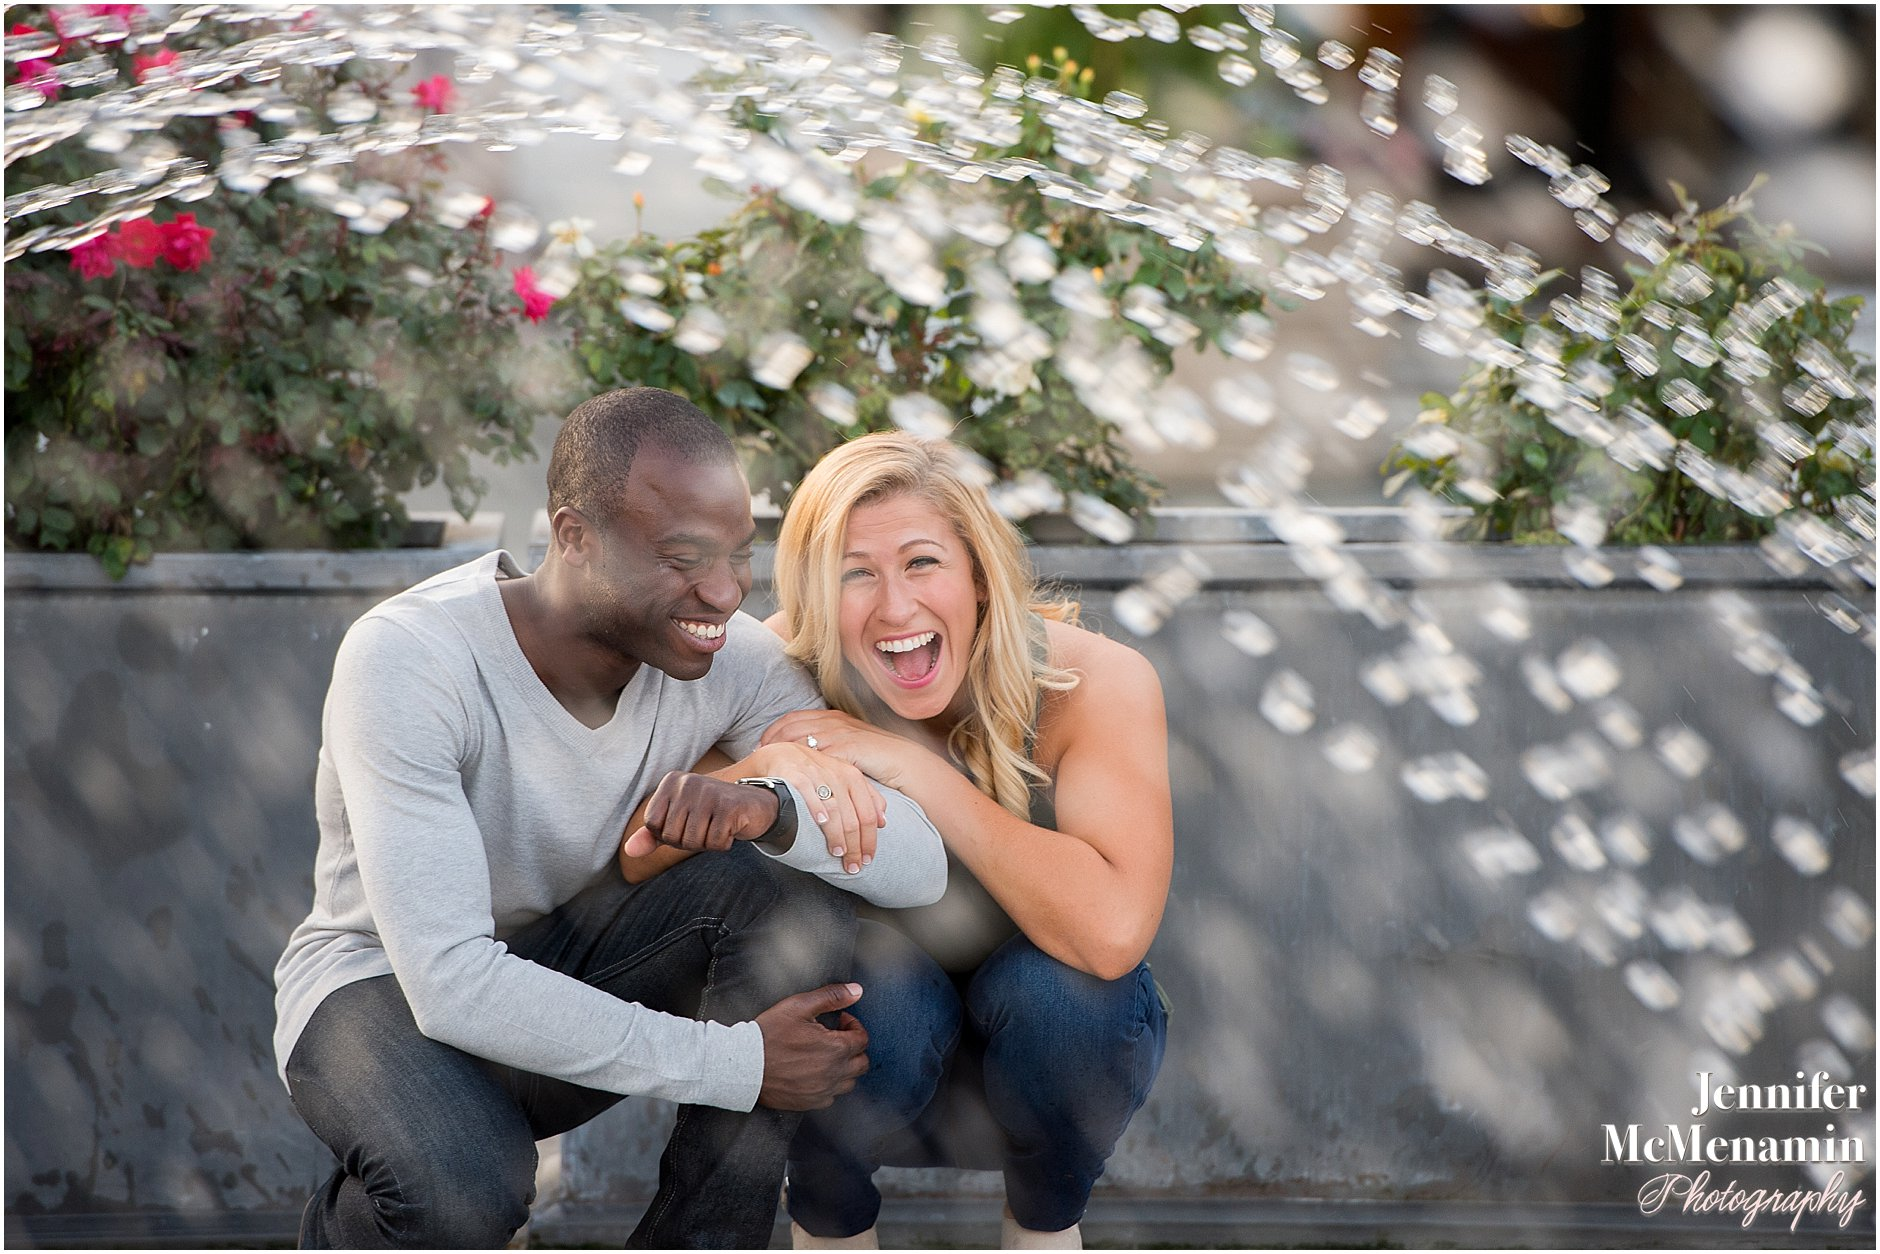 295-FrammAgorsor_01030-0176_Jennifer-McMenamin-Photography-DC-Engagement-photos